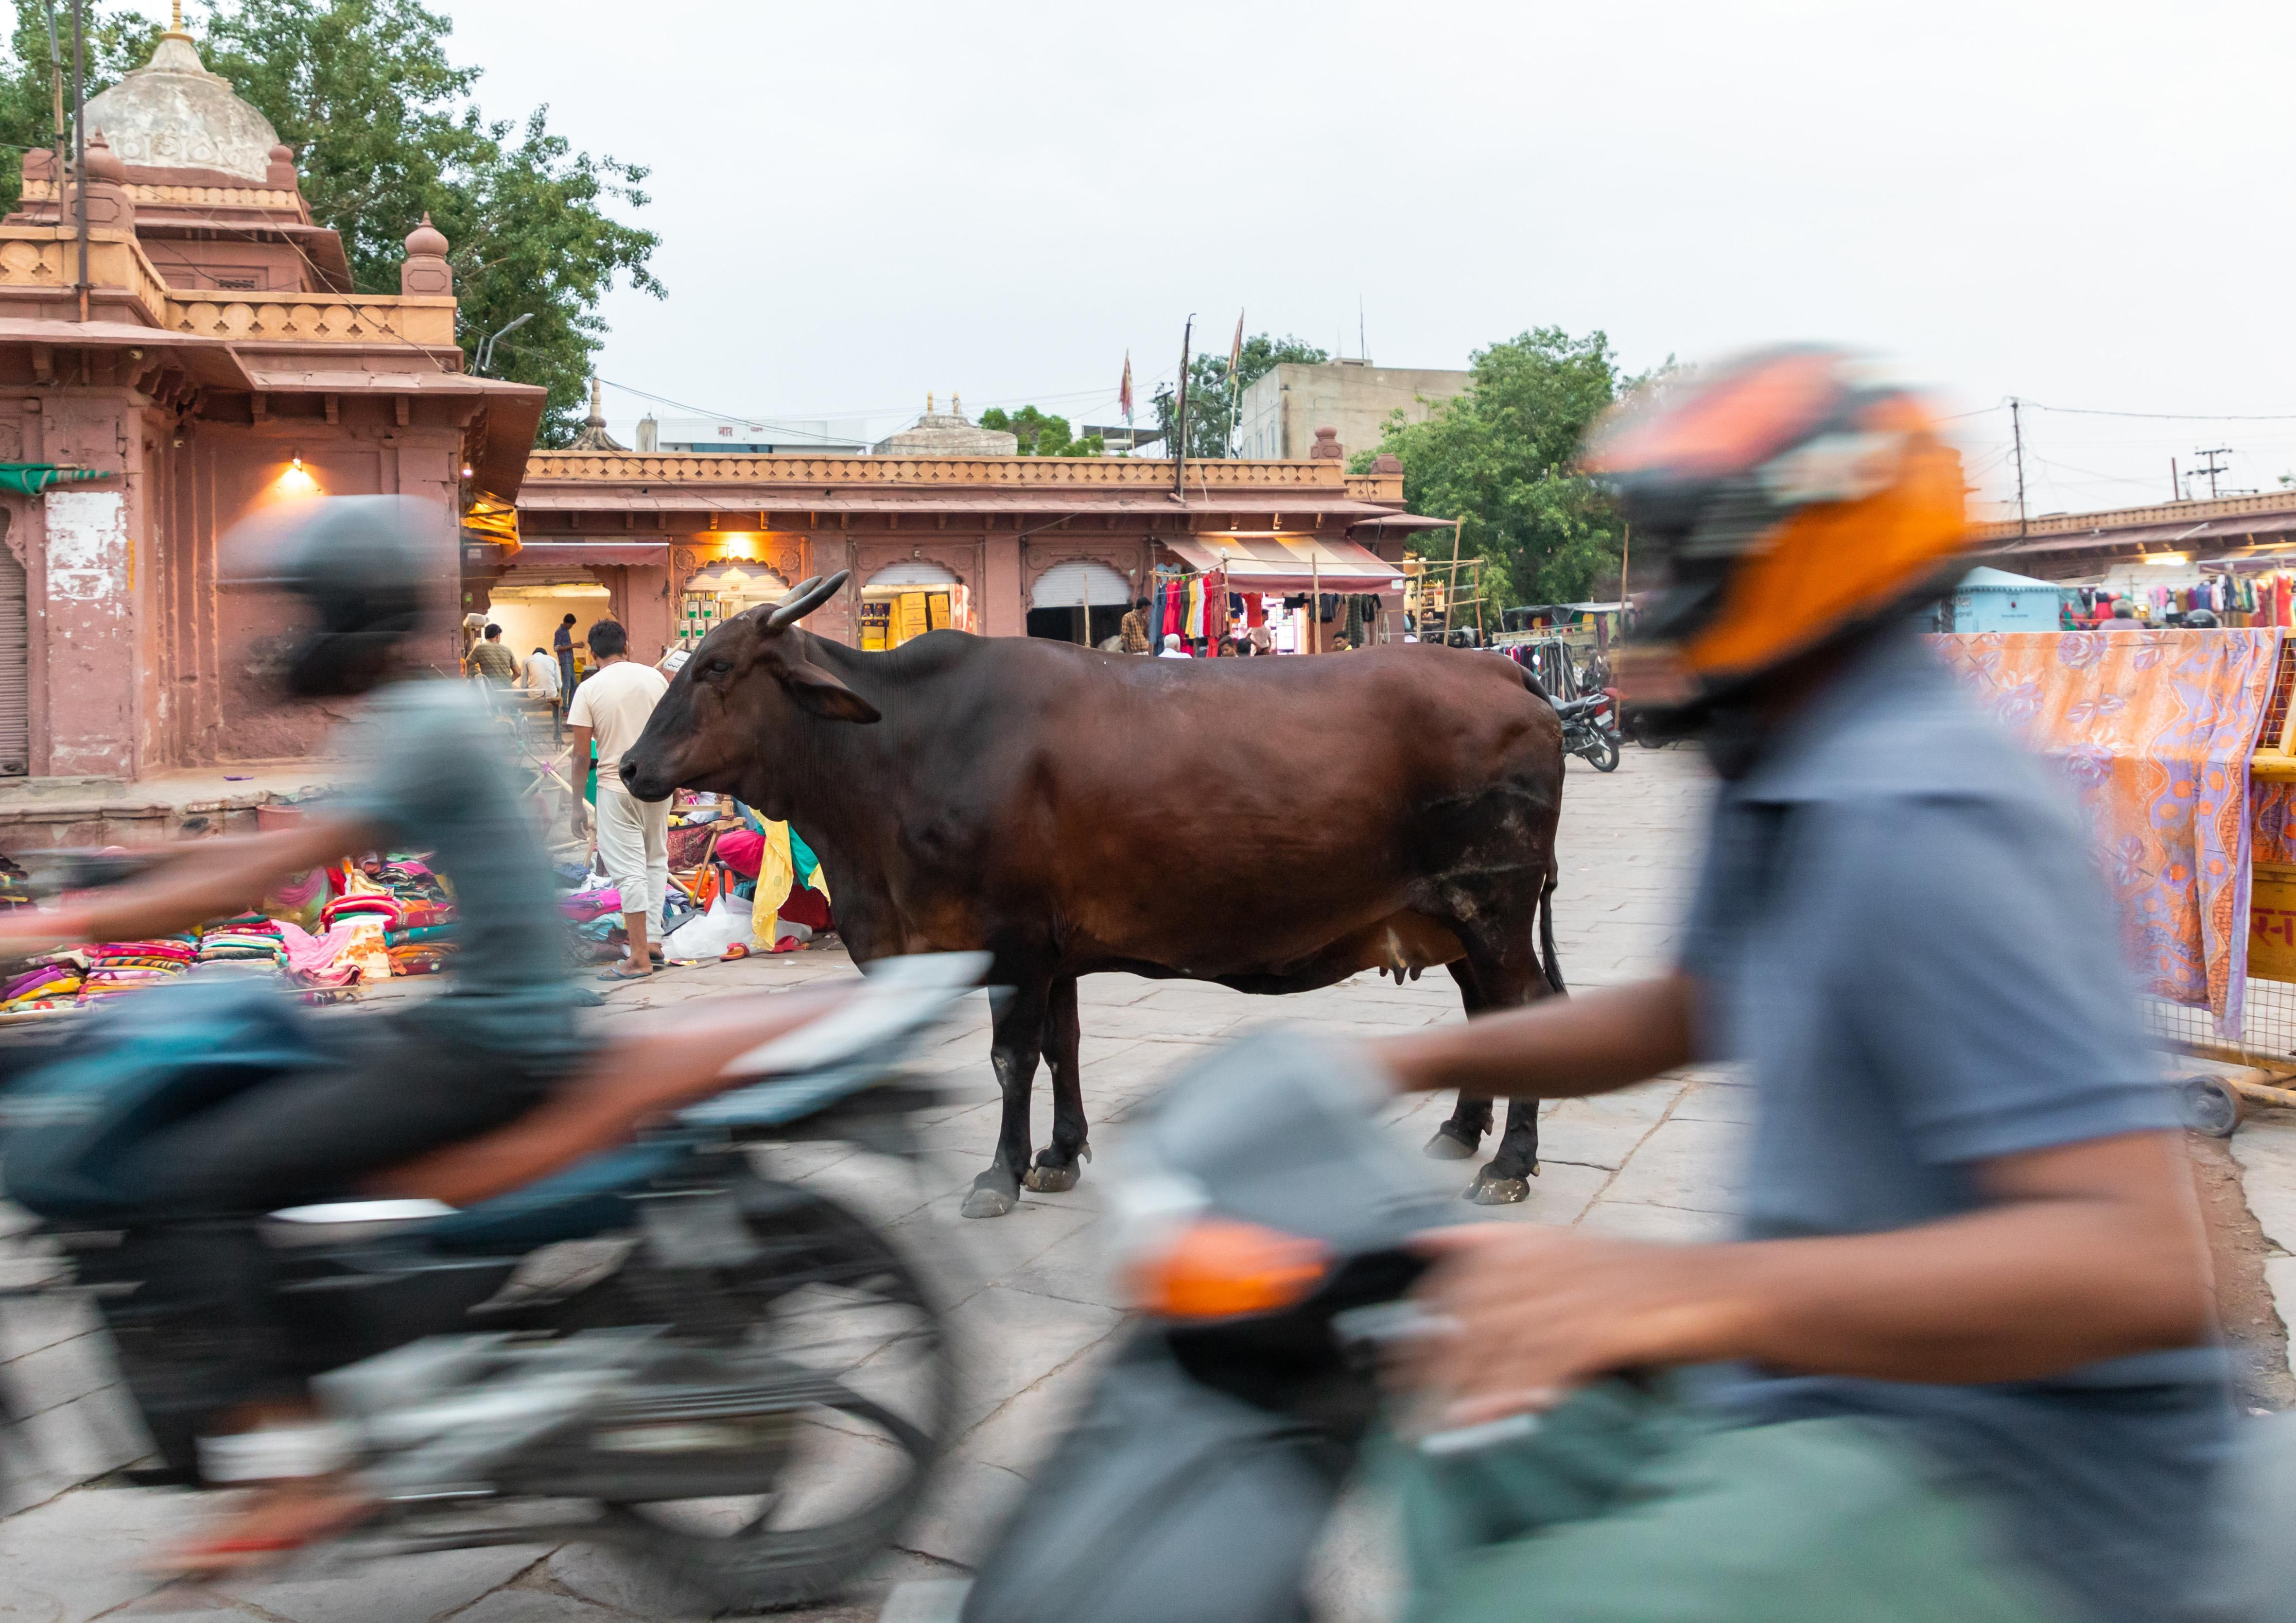 Cow standing in the middle of the street in the traffic of motorbikes, Rajasthan, Jodhpur, India.